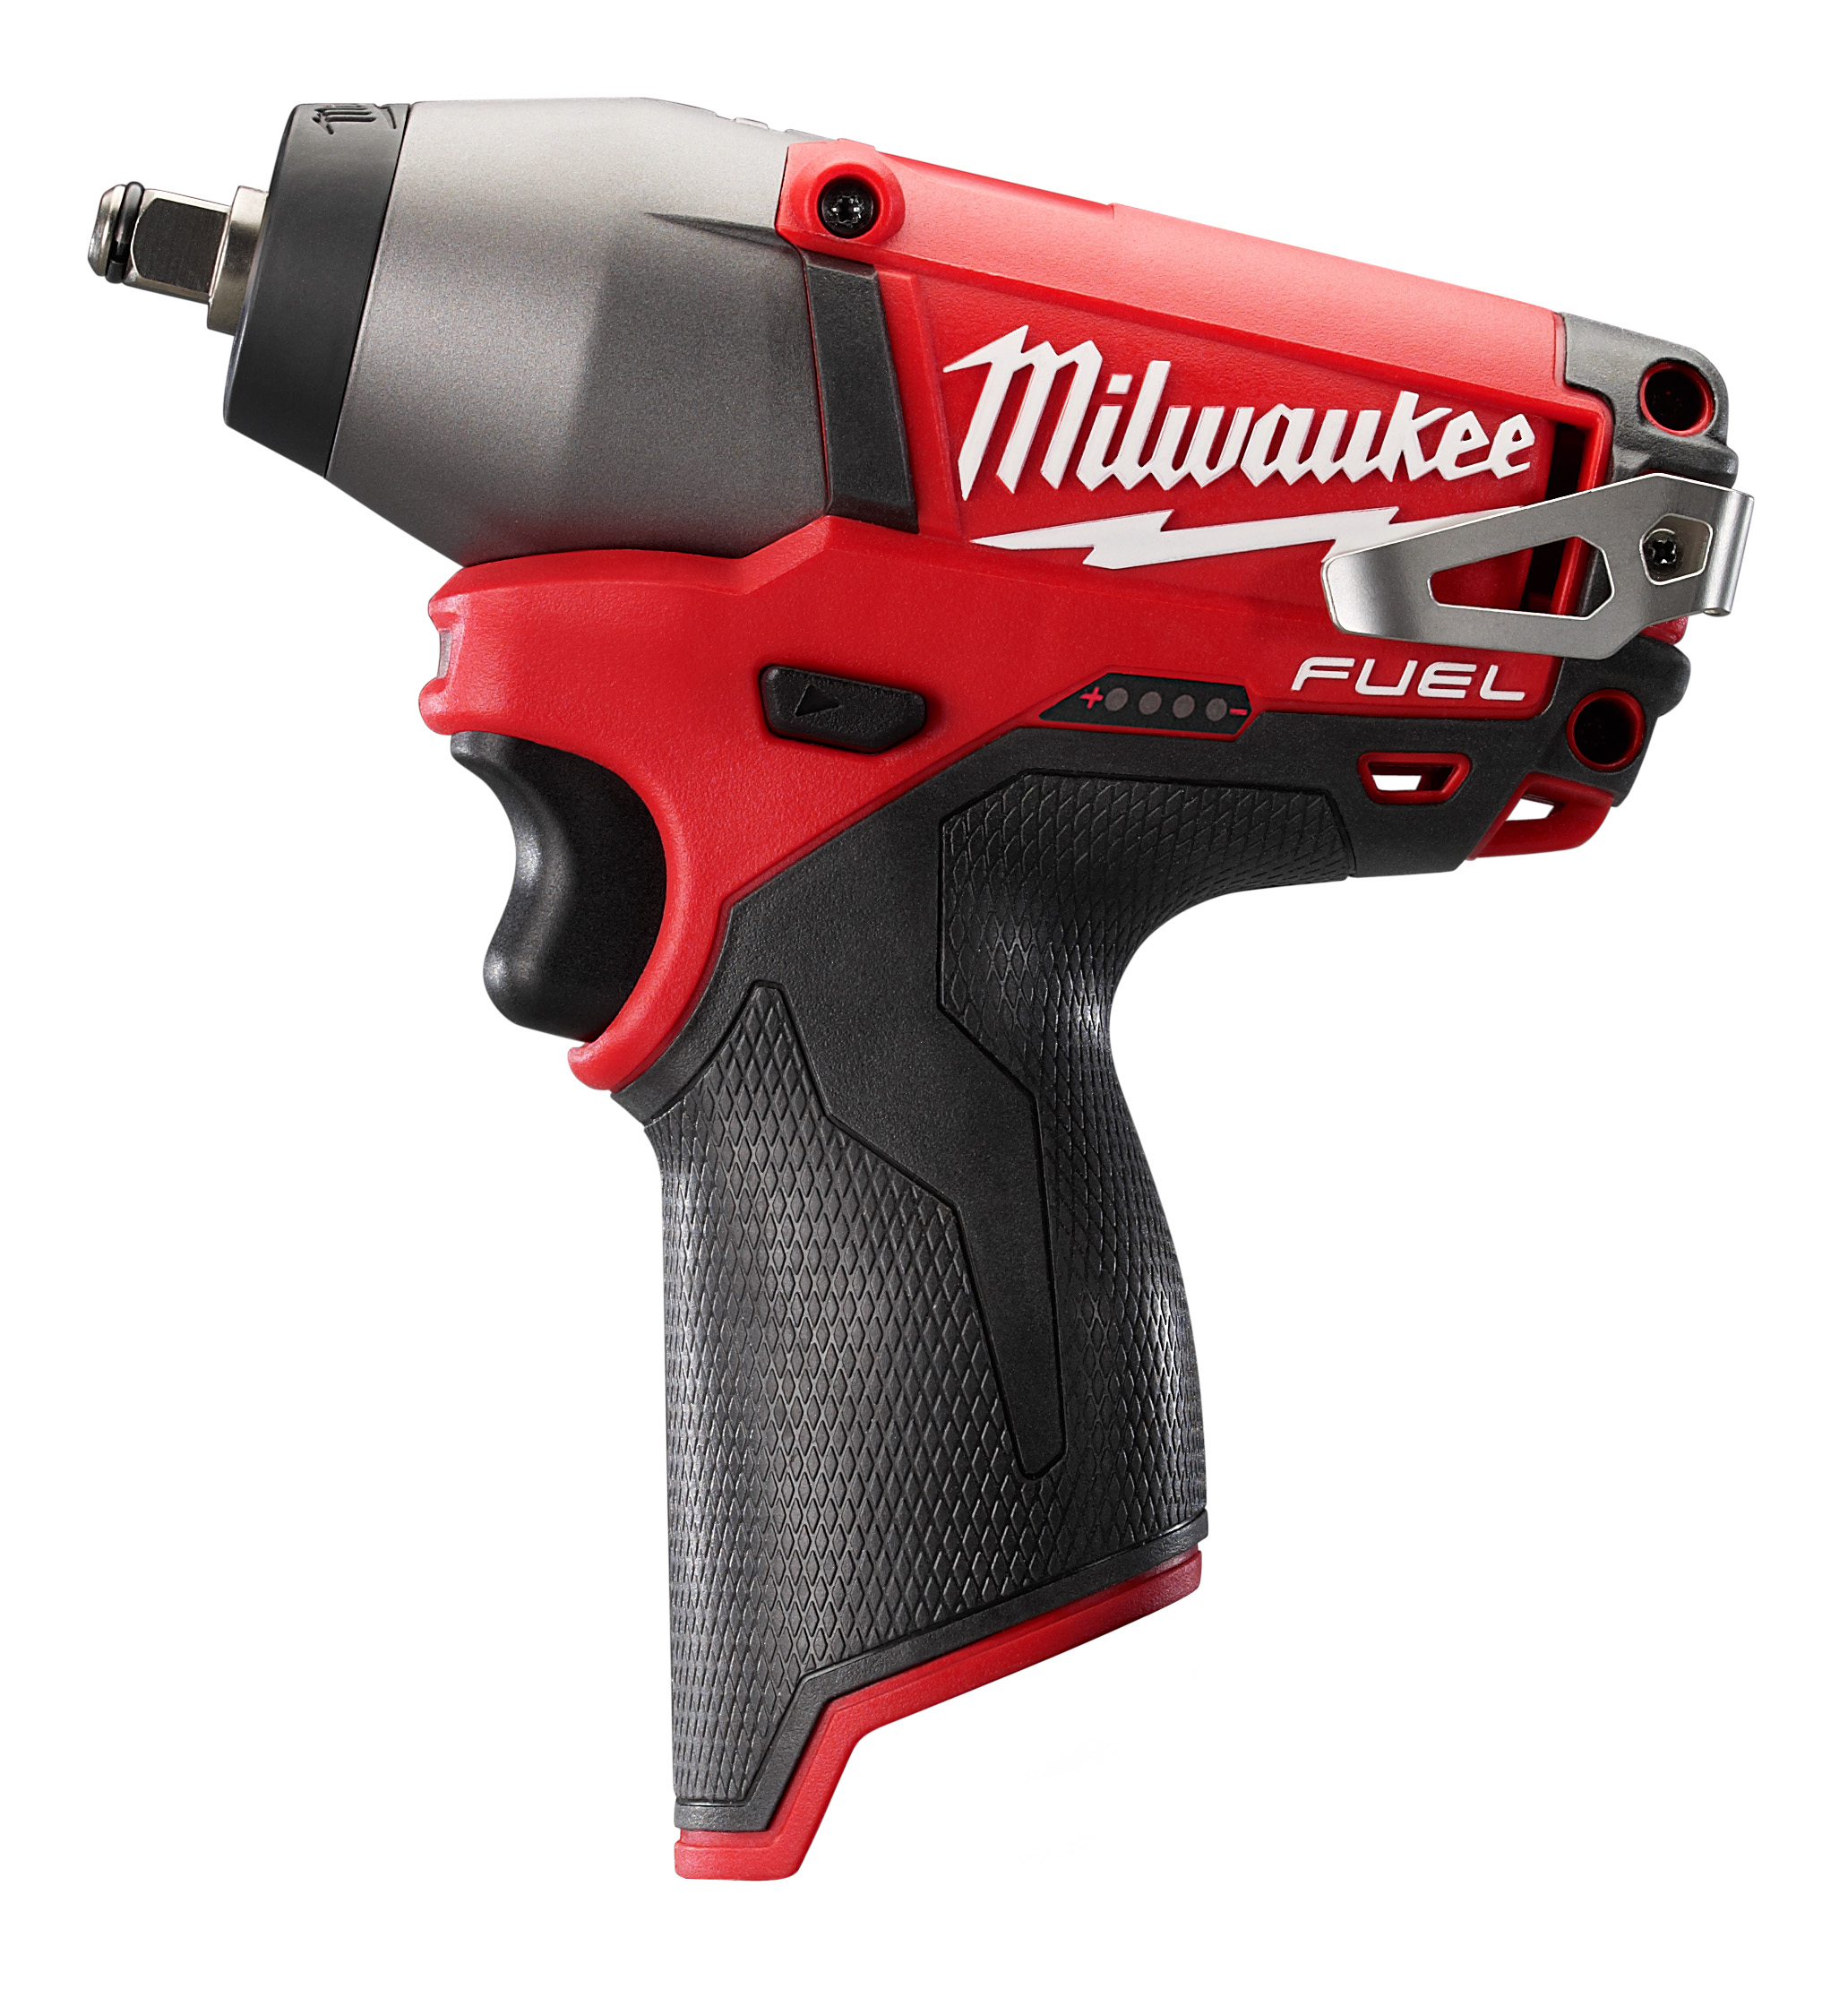 Milwaukee® M12™ FUEL™ 2454-20 Compact Cordless Impact Wrench, 3/8 in Straight Drive, 2650/3500 bpm, 117 ft-lb Torque, 12 VDC, 6-1/2 in OAL